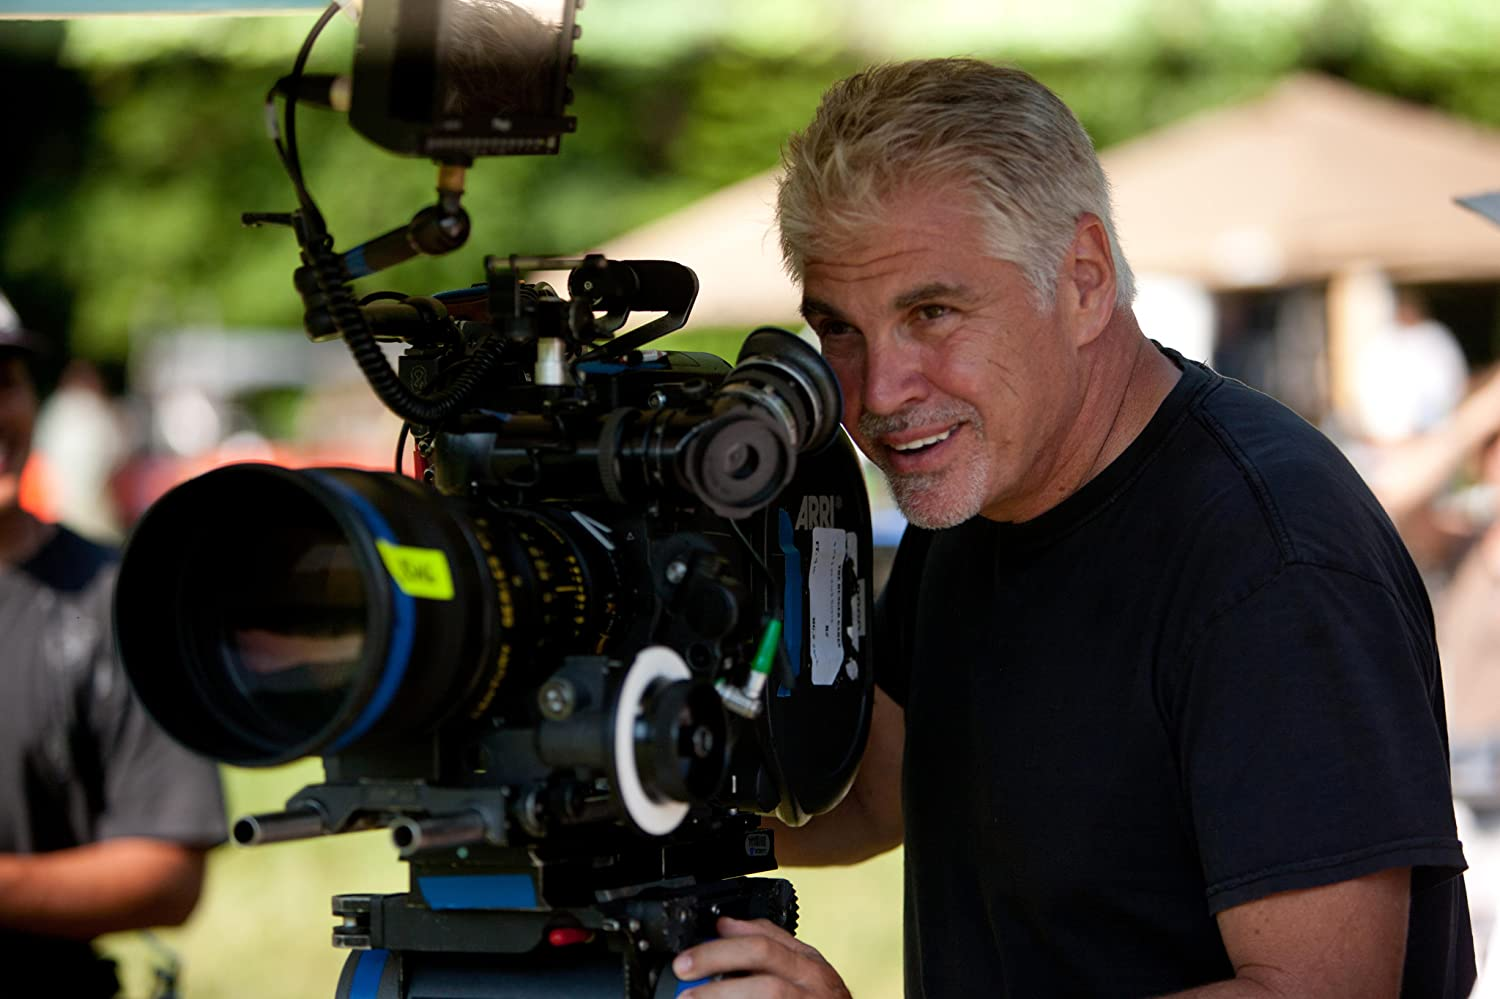 Gary Ross in The Hunger Games (2012)